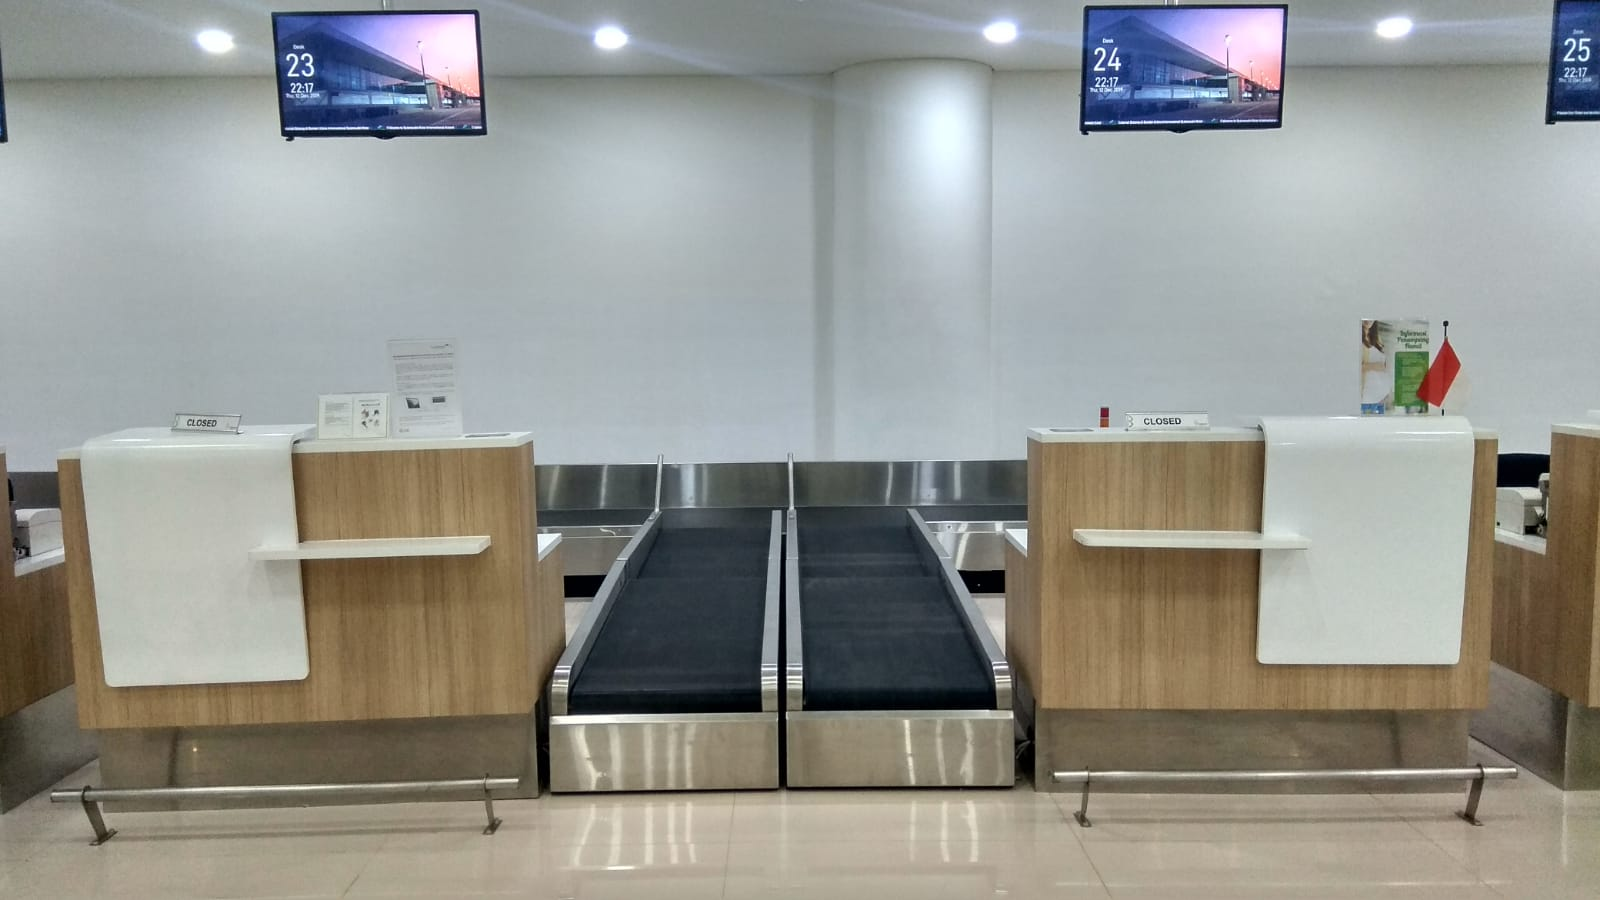 Ansir-Systems-Banjarmasin Front of Check Ins